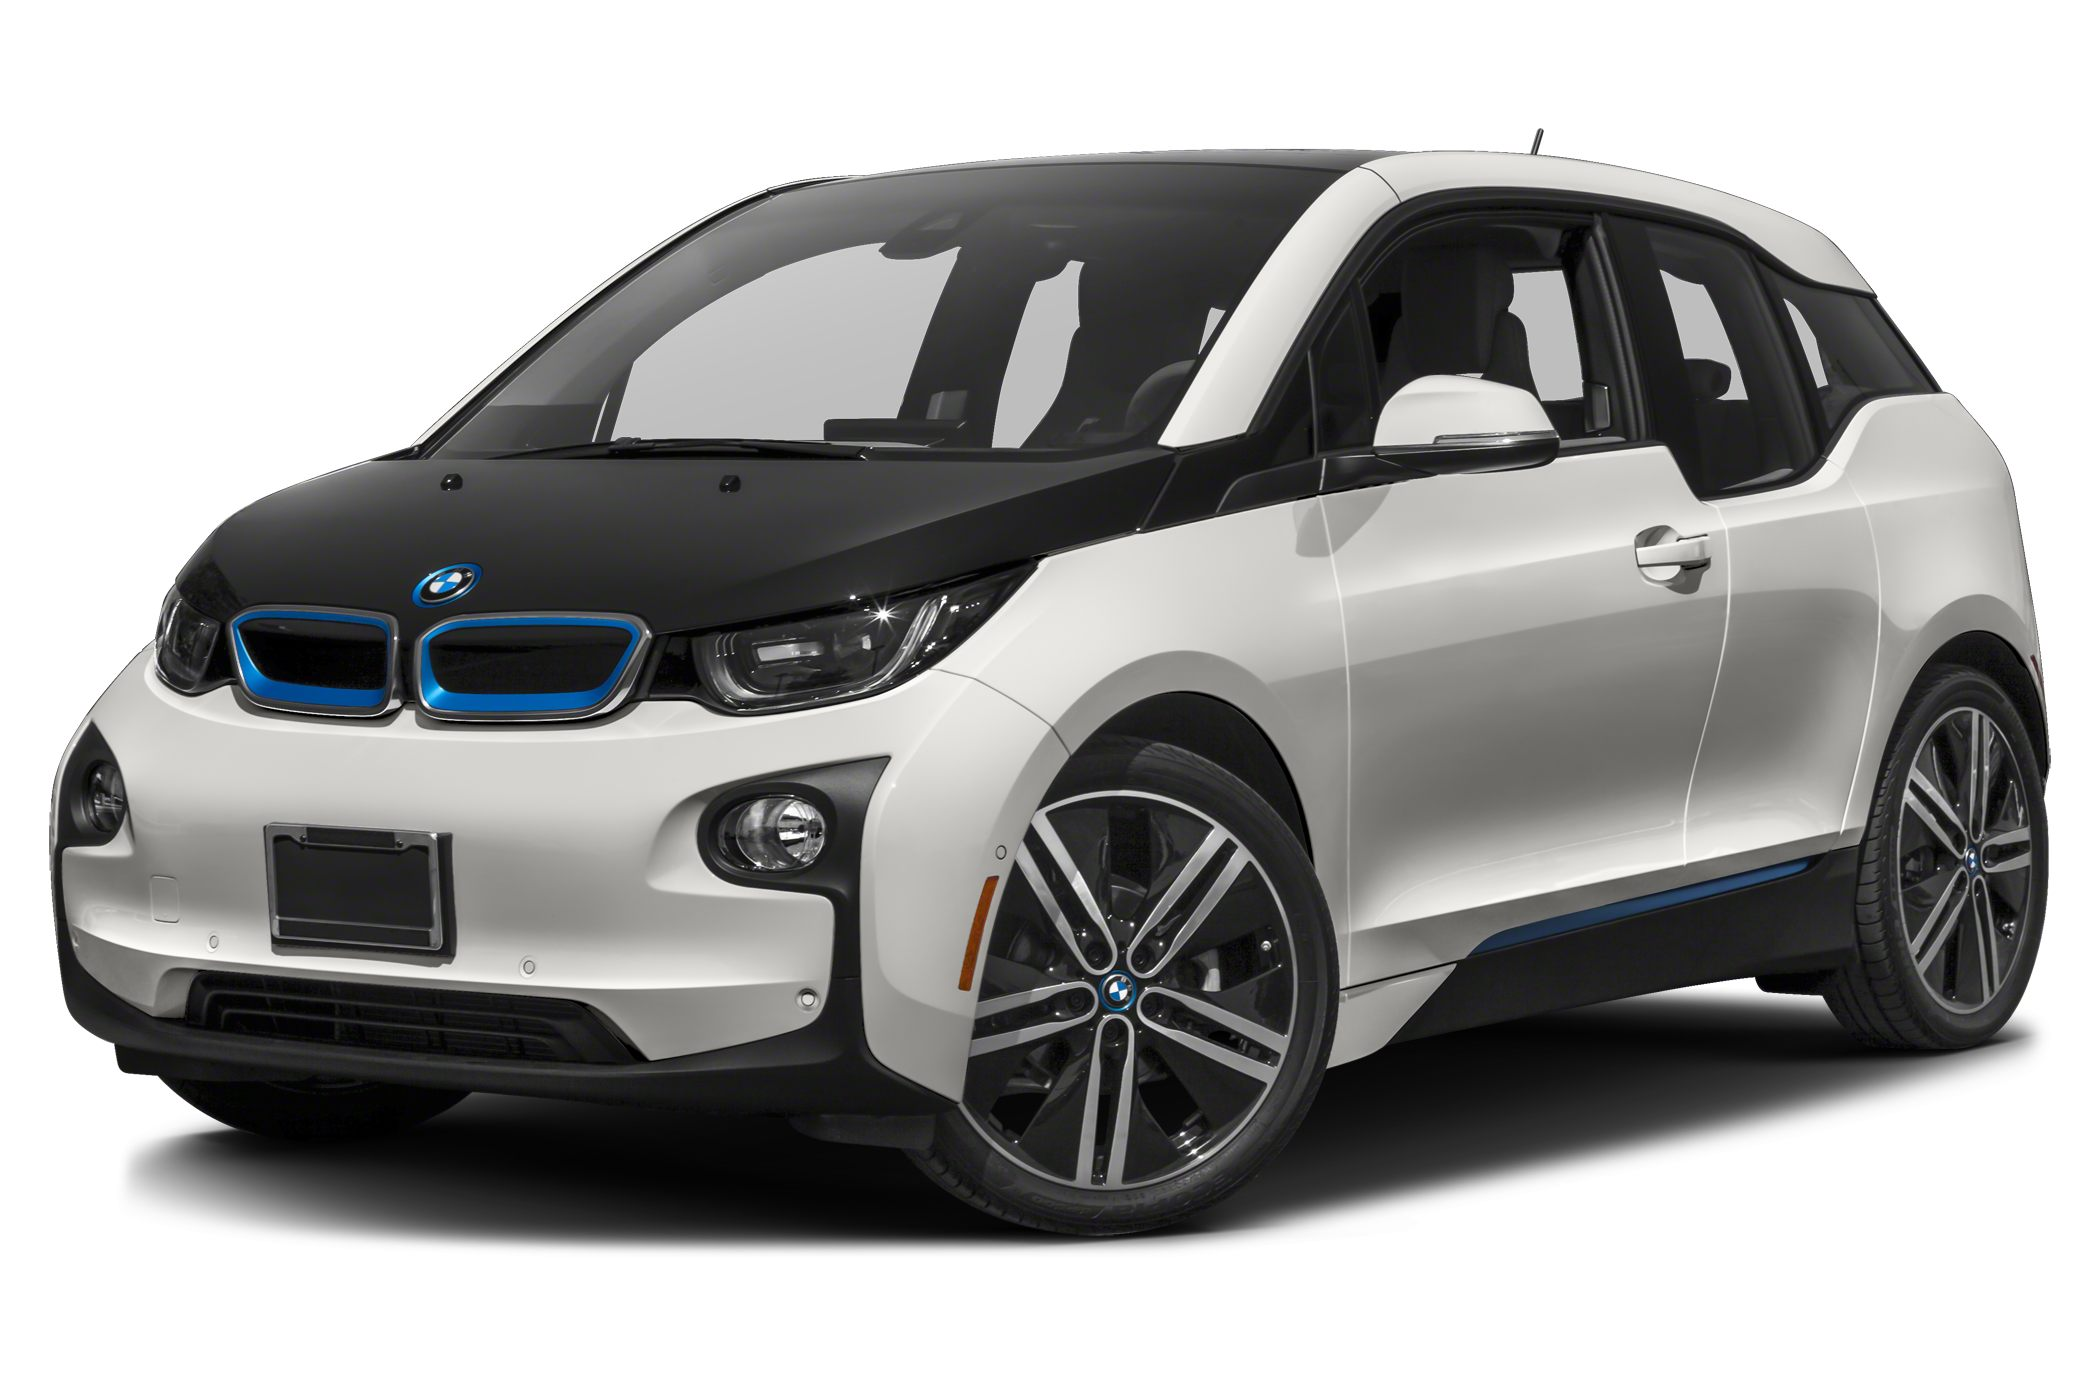 Image result for BMW i3